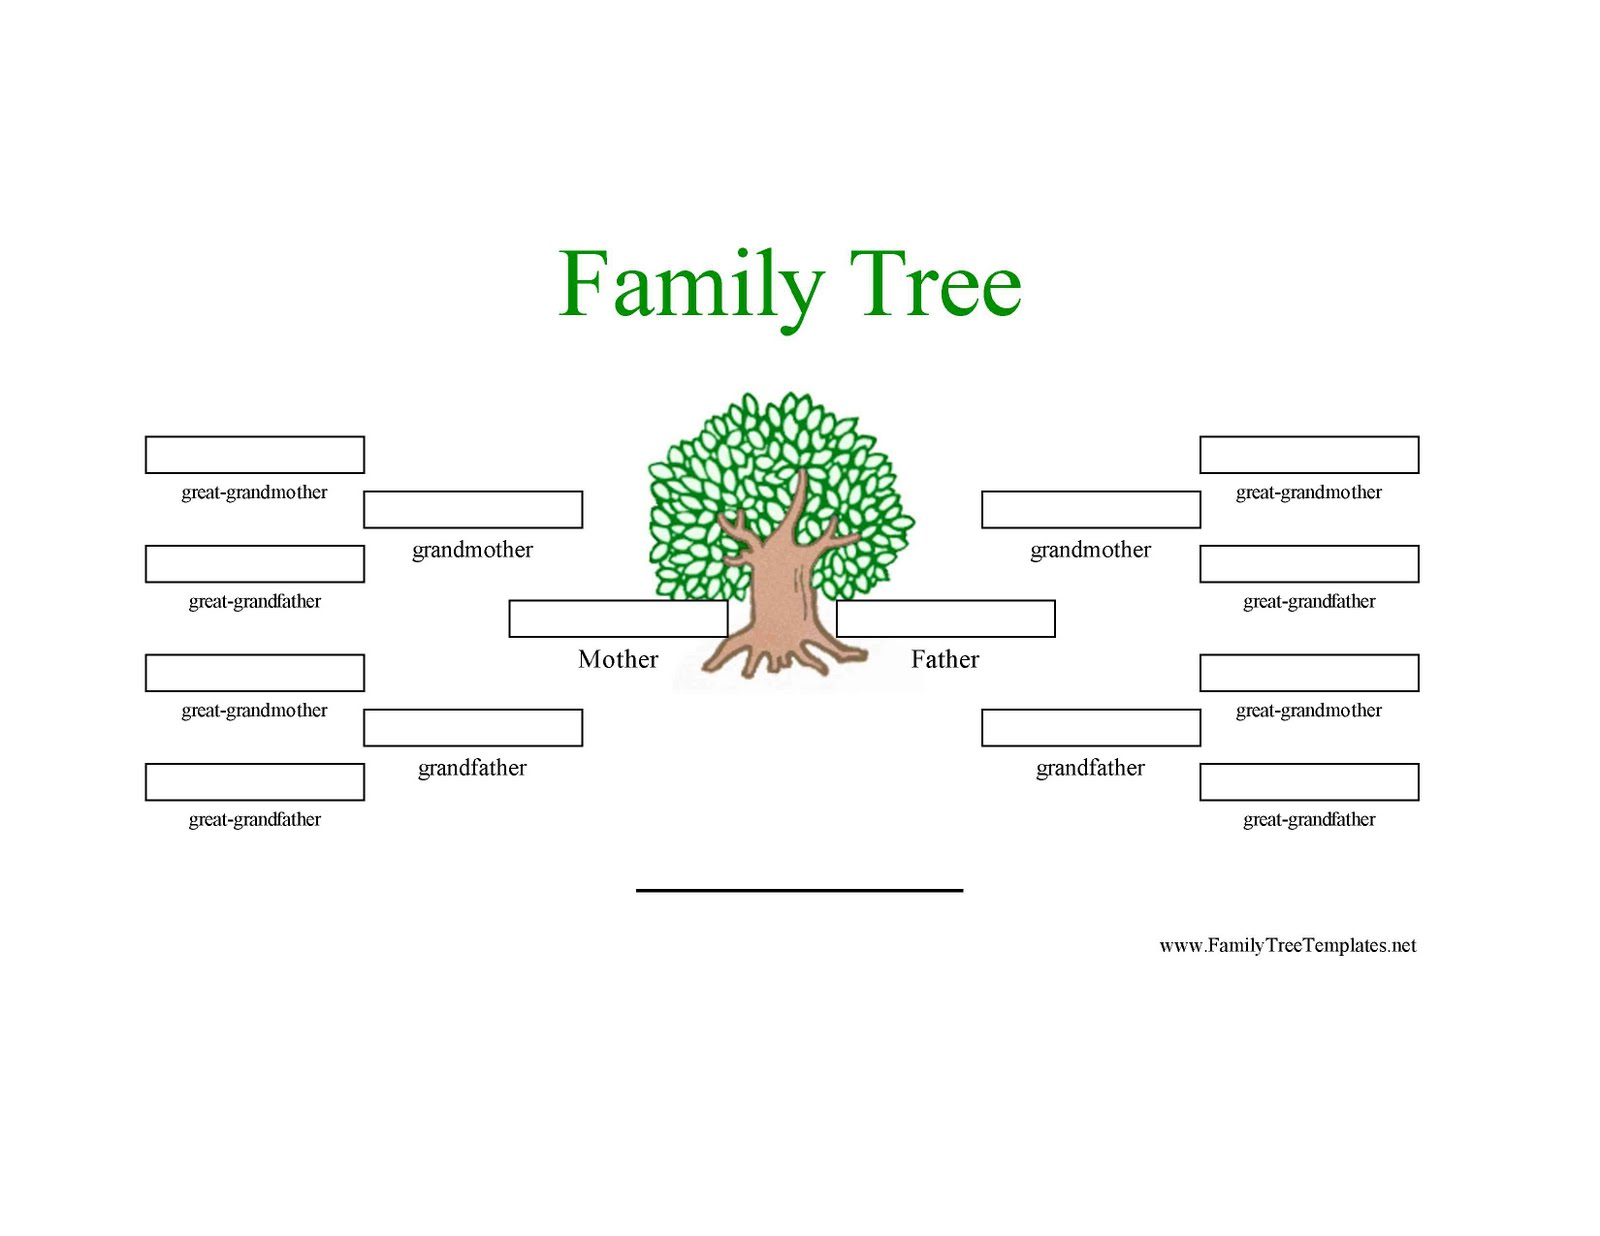 generations family tree template Index of /